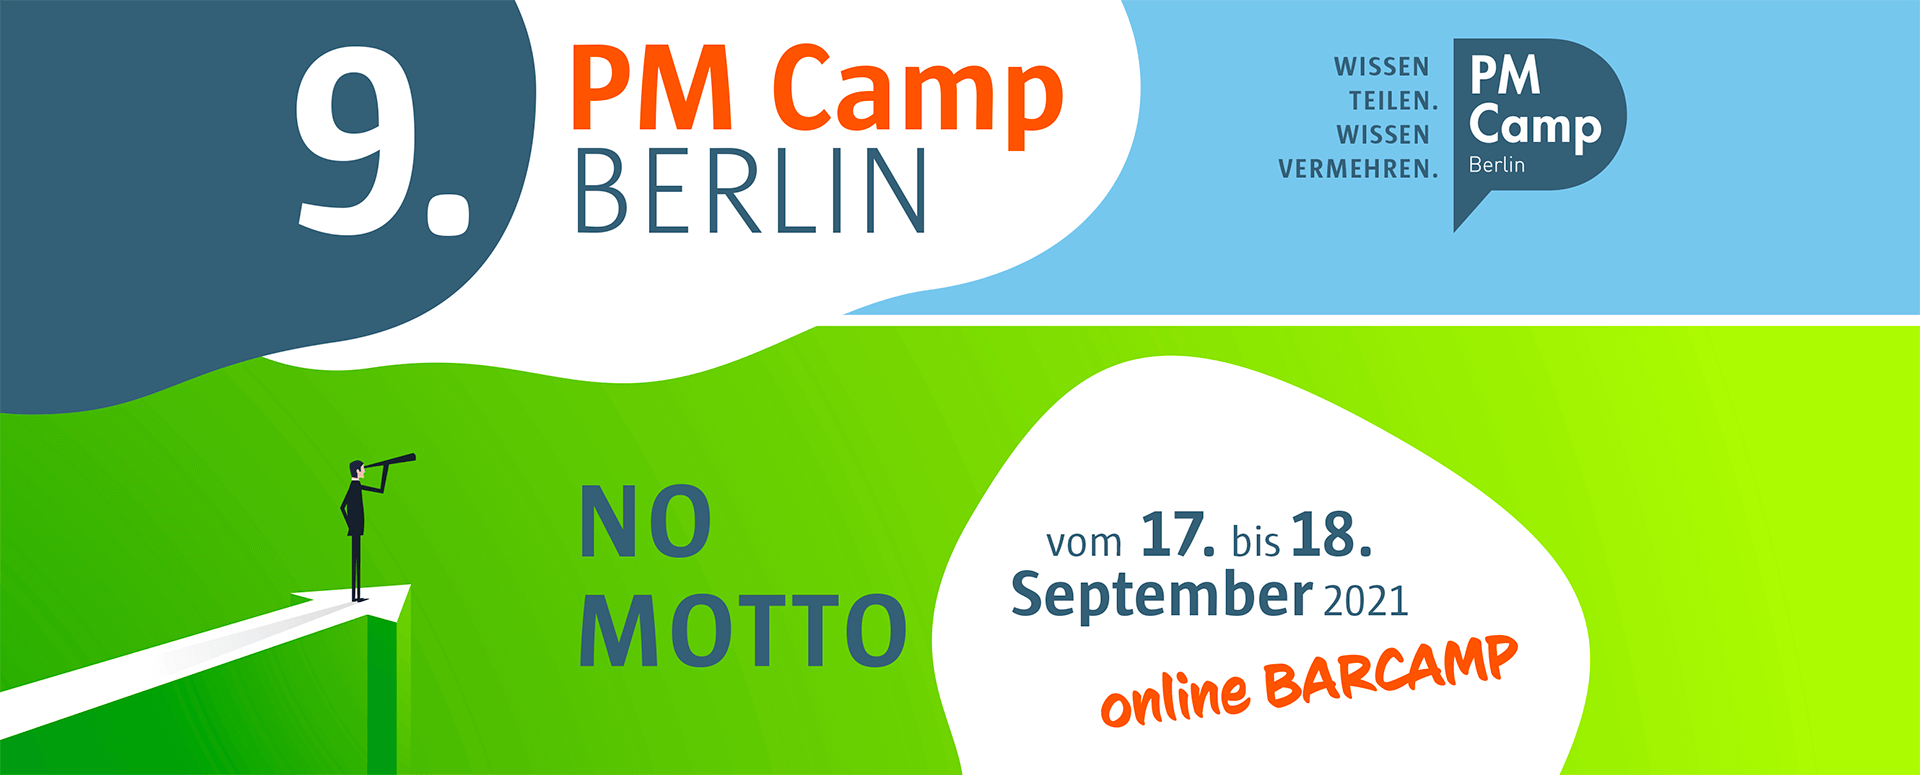 PM Camp Berlin - No Motto - 17./18.09.21